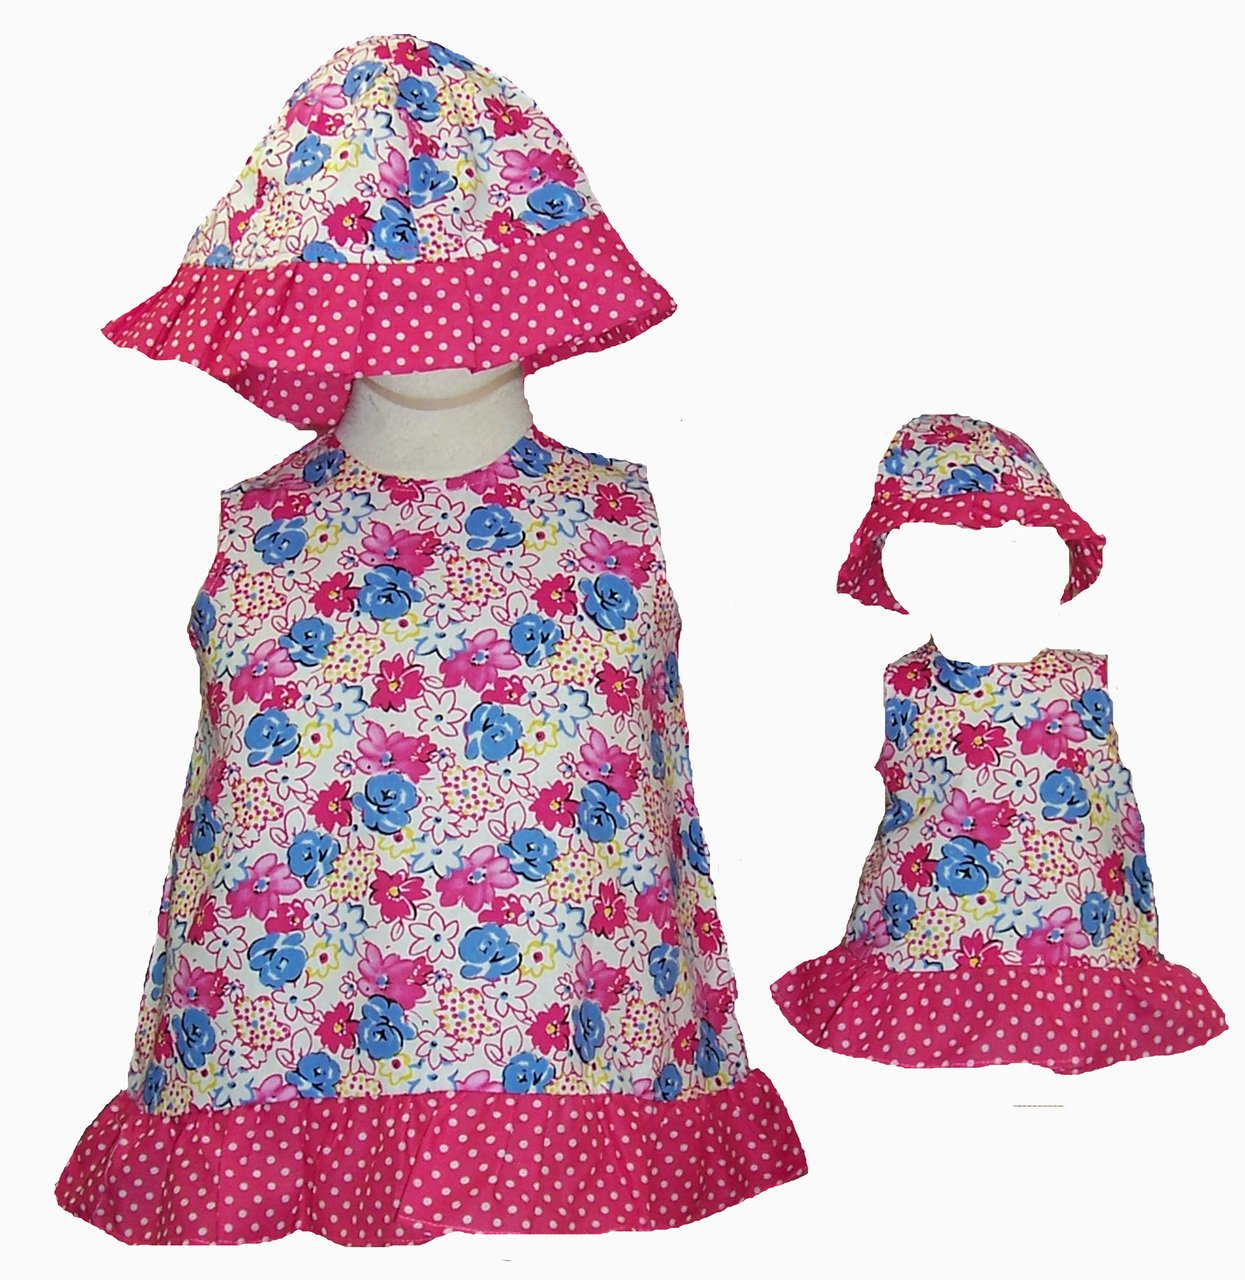 Toddler Large Clothes Large Size Ruffle Matching Girl and Doll and Clothes B0104U828M, co100percent:794f86dc --- arvoreazul.com.br